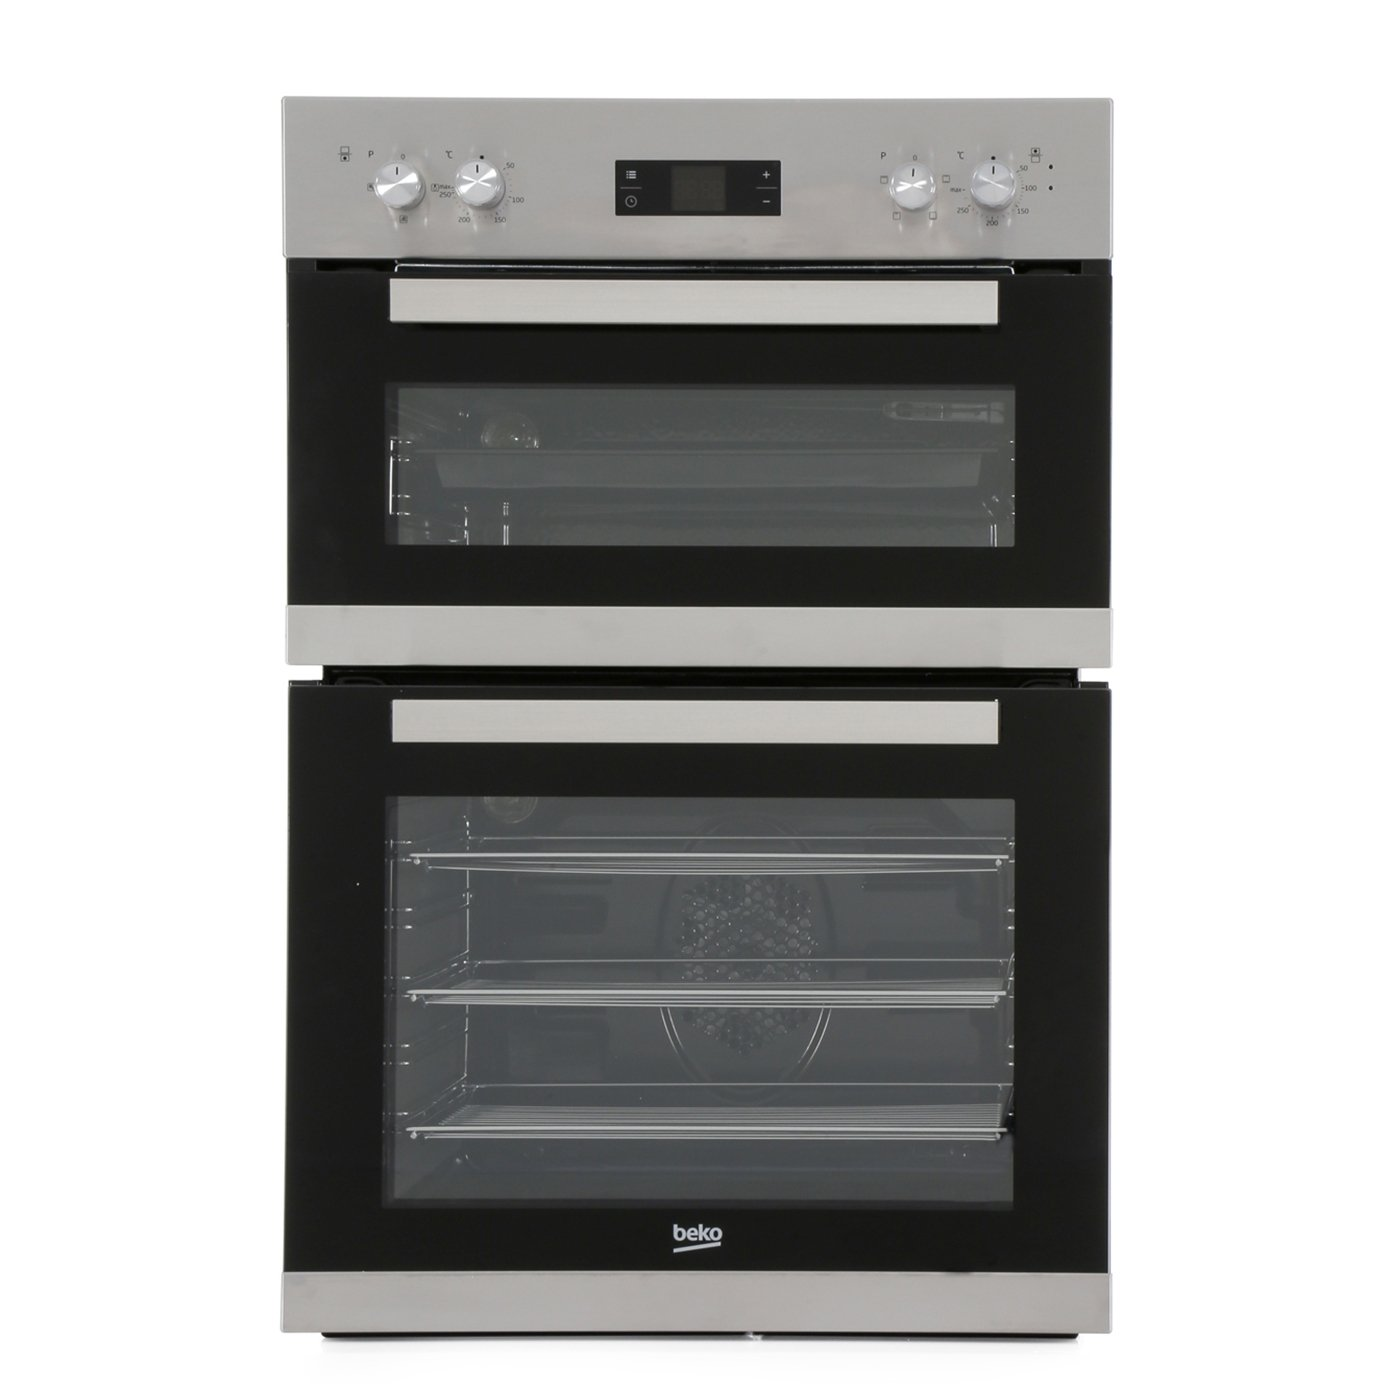 buy beko cdf22309x double built in electric oven stainless steel rh markselectrical co uk beko gas cooker parts beko gas cooker manual